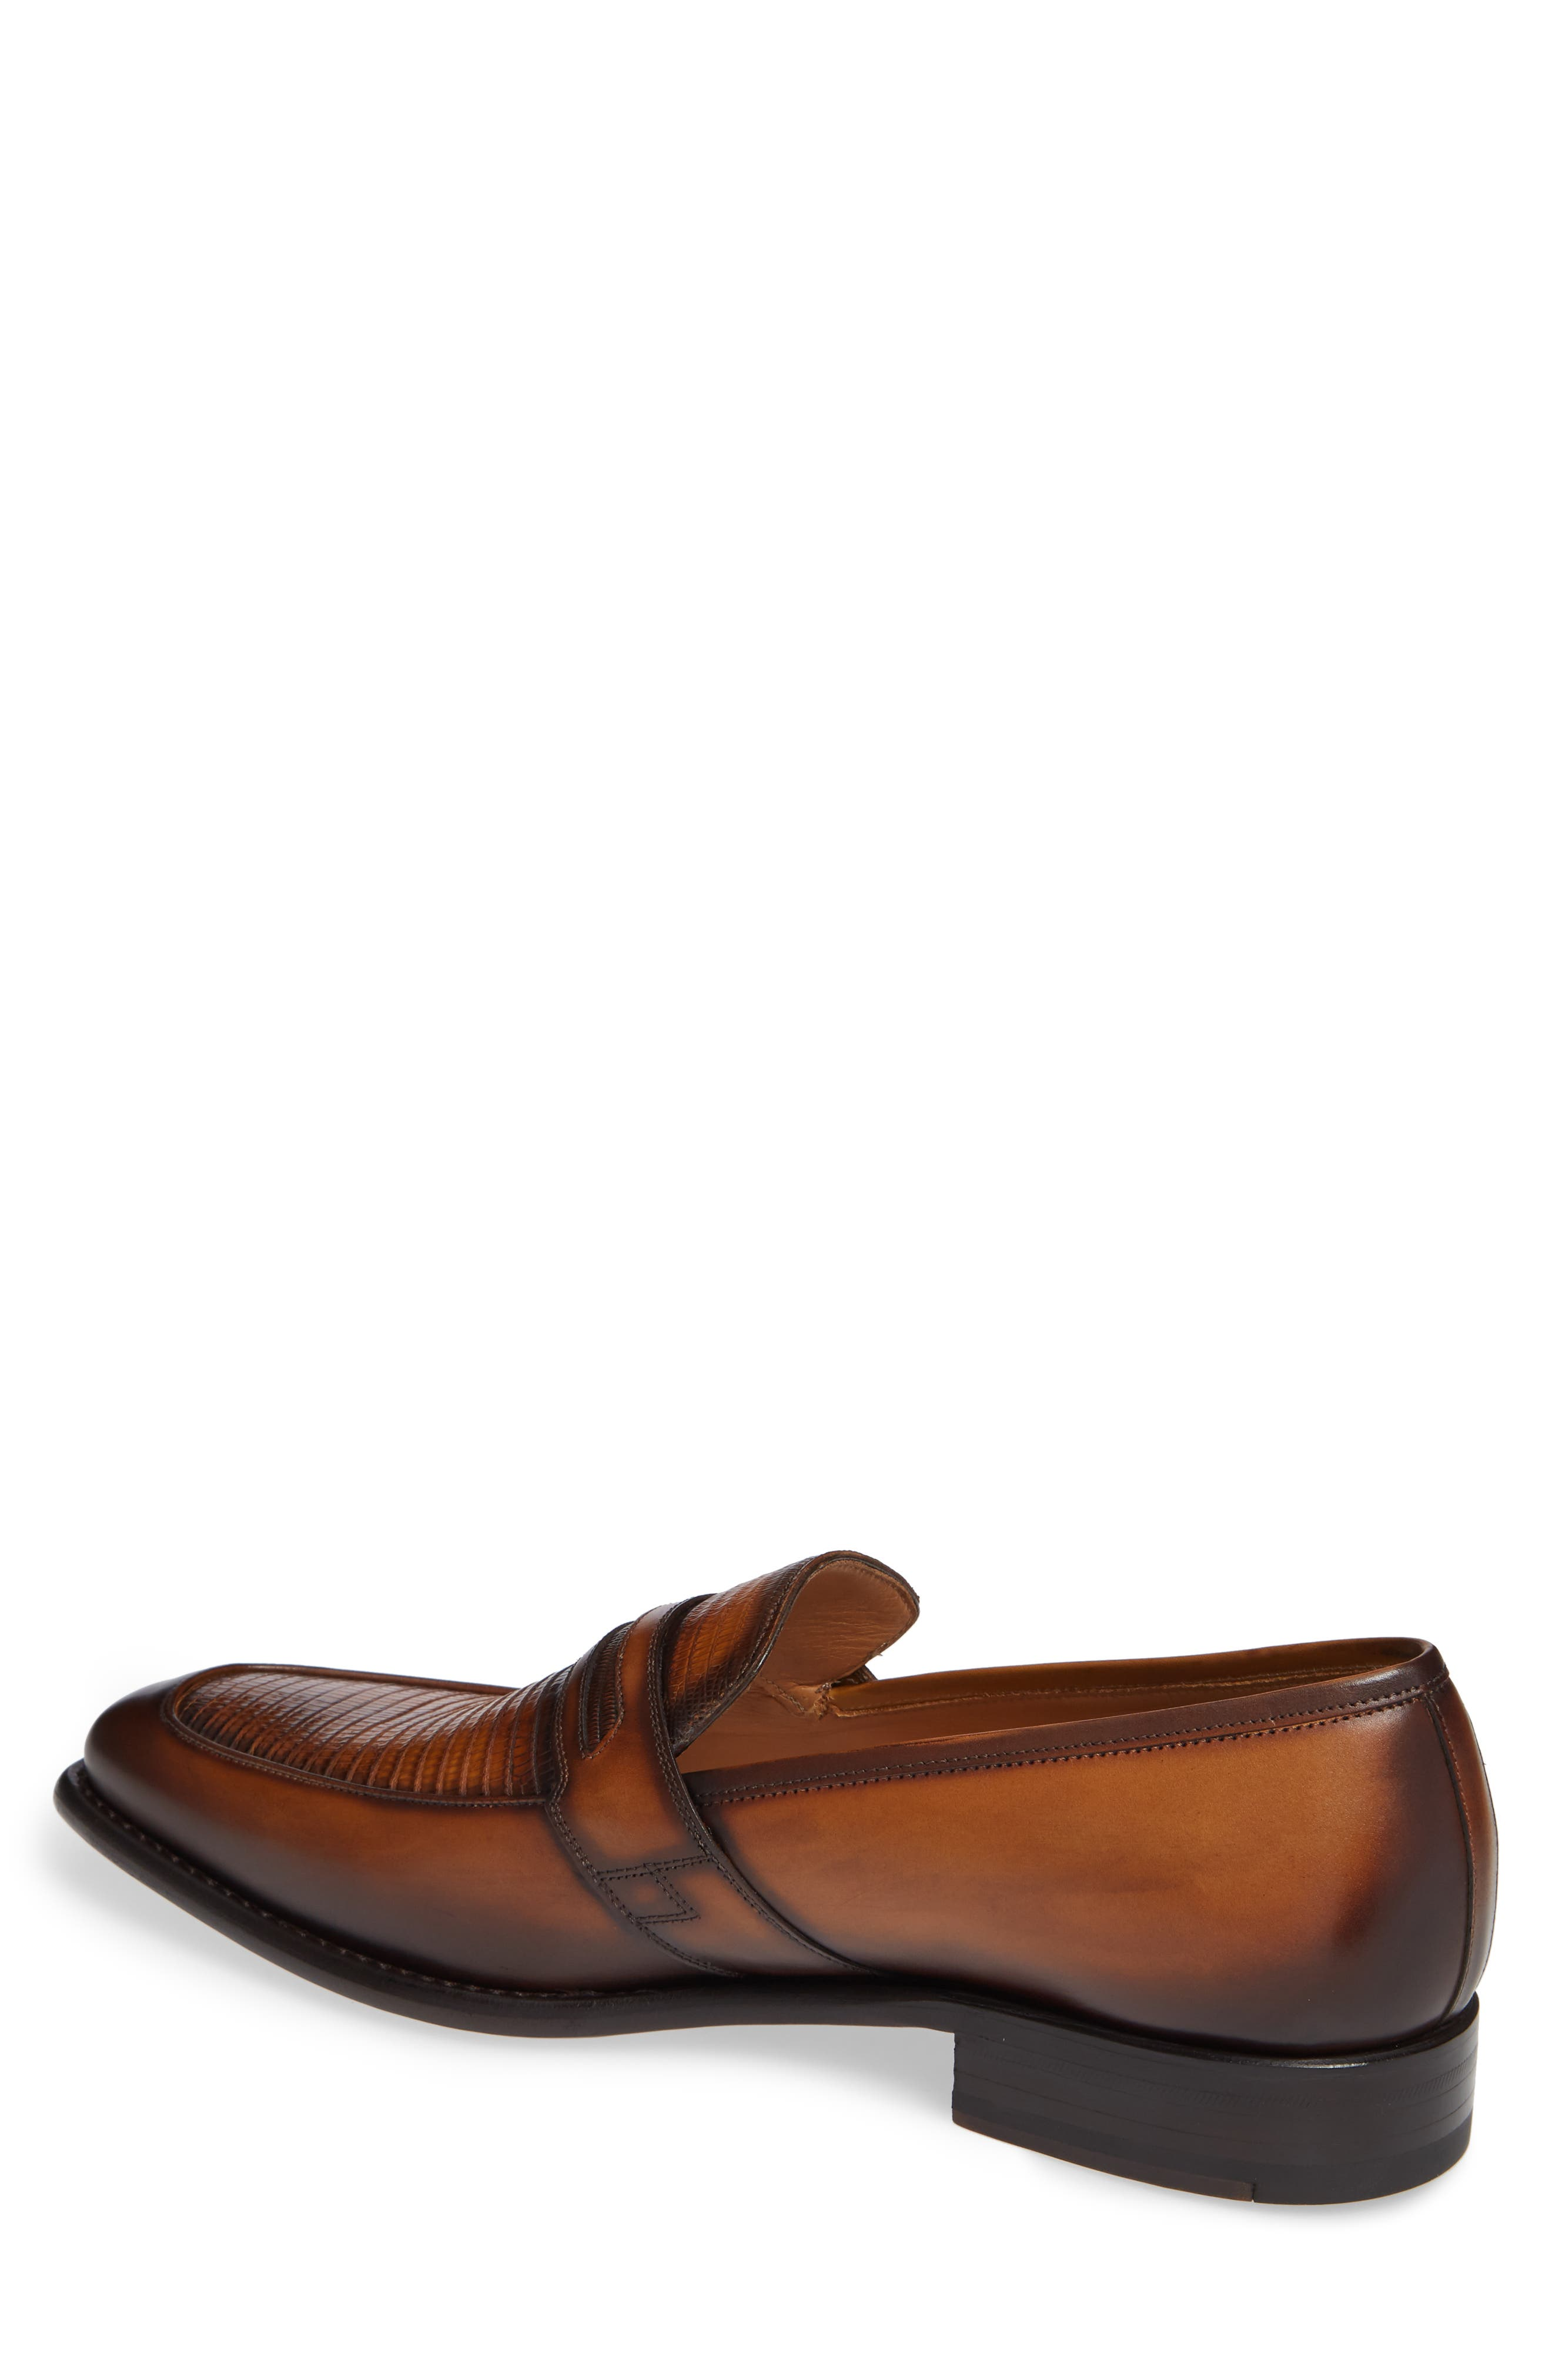 Hess Penny Loafer,                             Alternate thumbnail 2, color,                             HONEY LEATHER